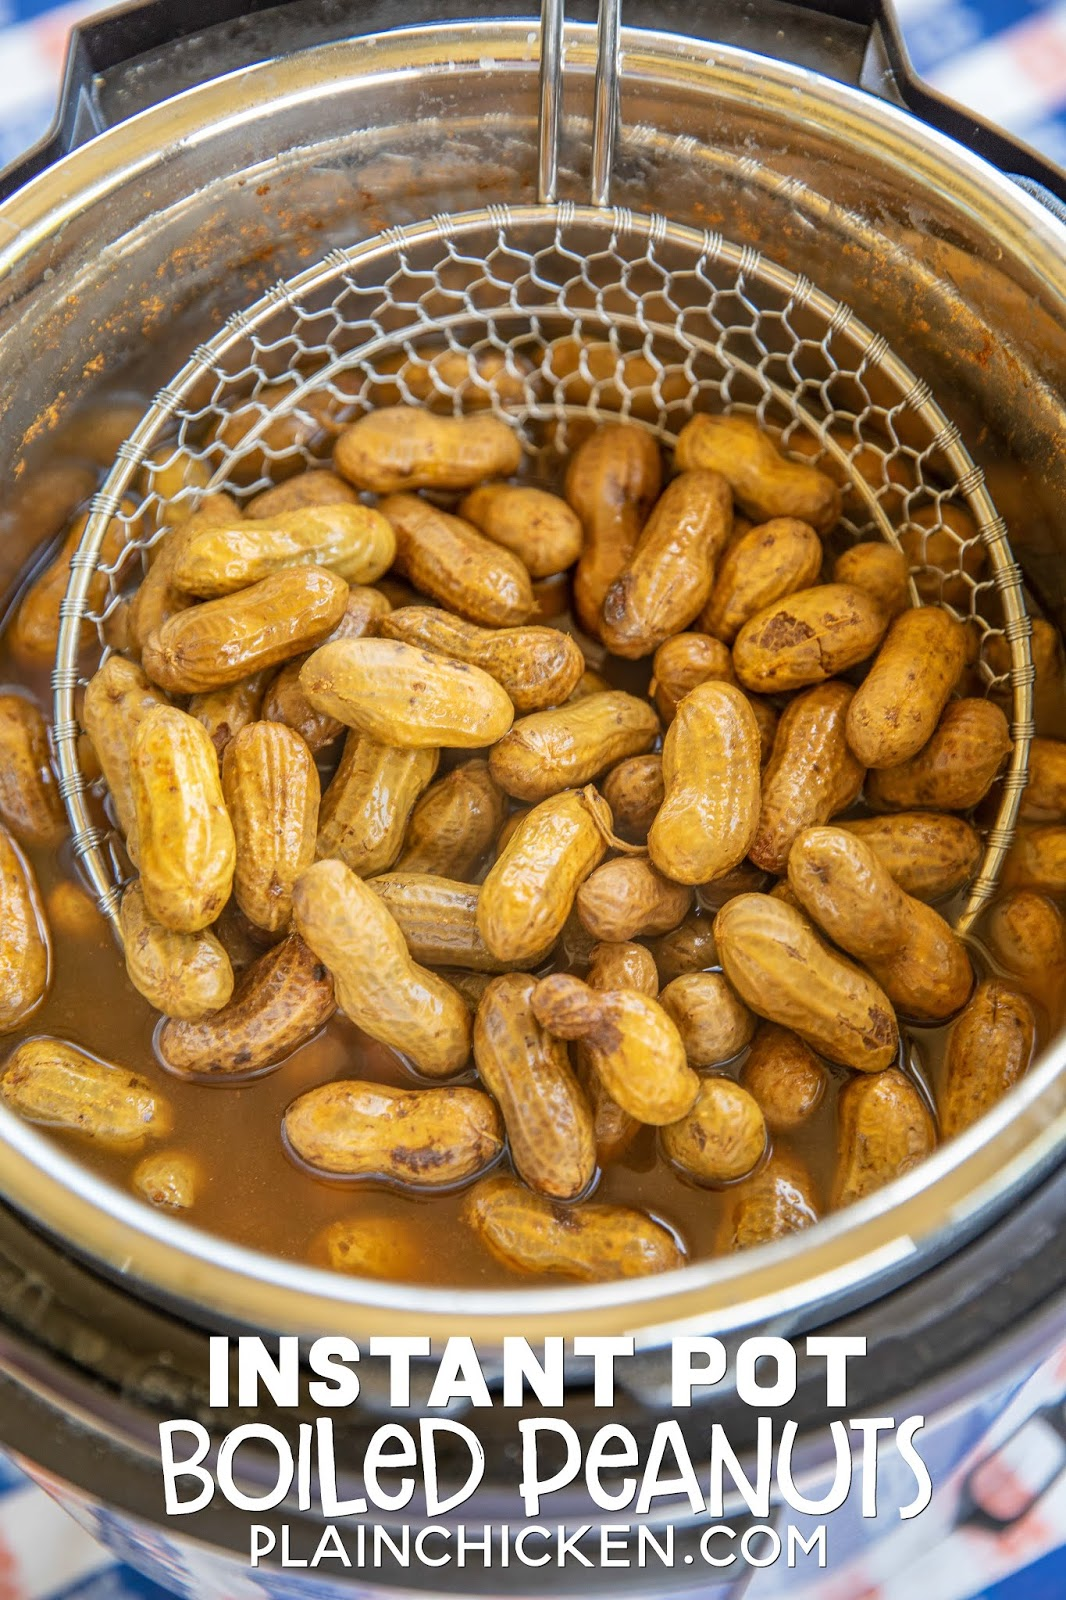 Instant Pot Boiled Peanuts - ready to eat in under an hour!! We love these boiled peanuts for tailgating. SO easy to make! Season with cajun seasoning, old bay or salt. Store leftovers in the refrigerator for up to 10 days. #instantpot #tailgating #peanuts #boiledpeanuts